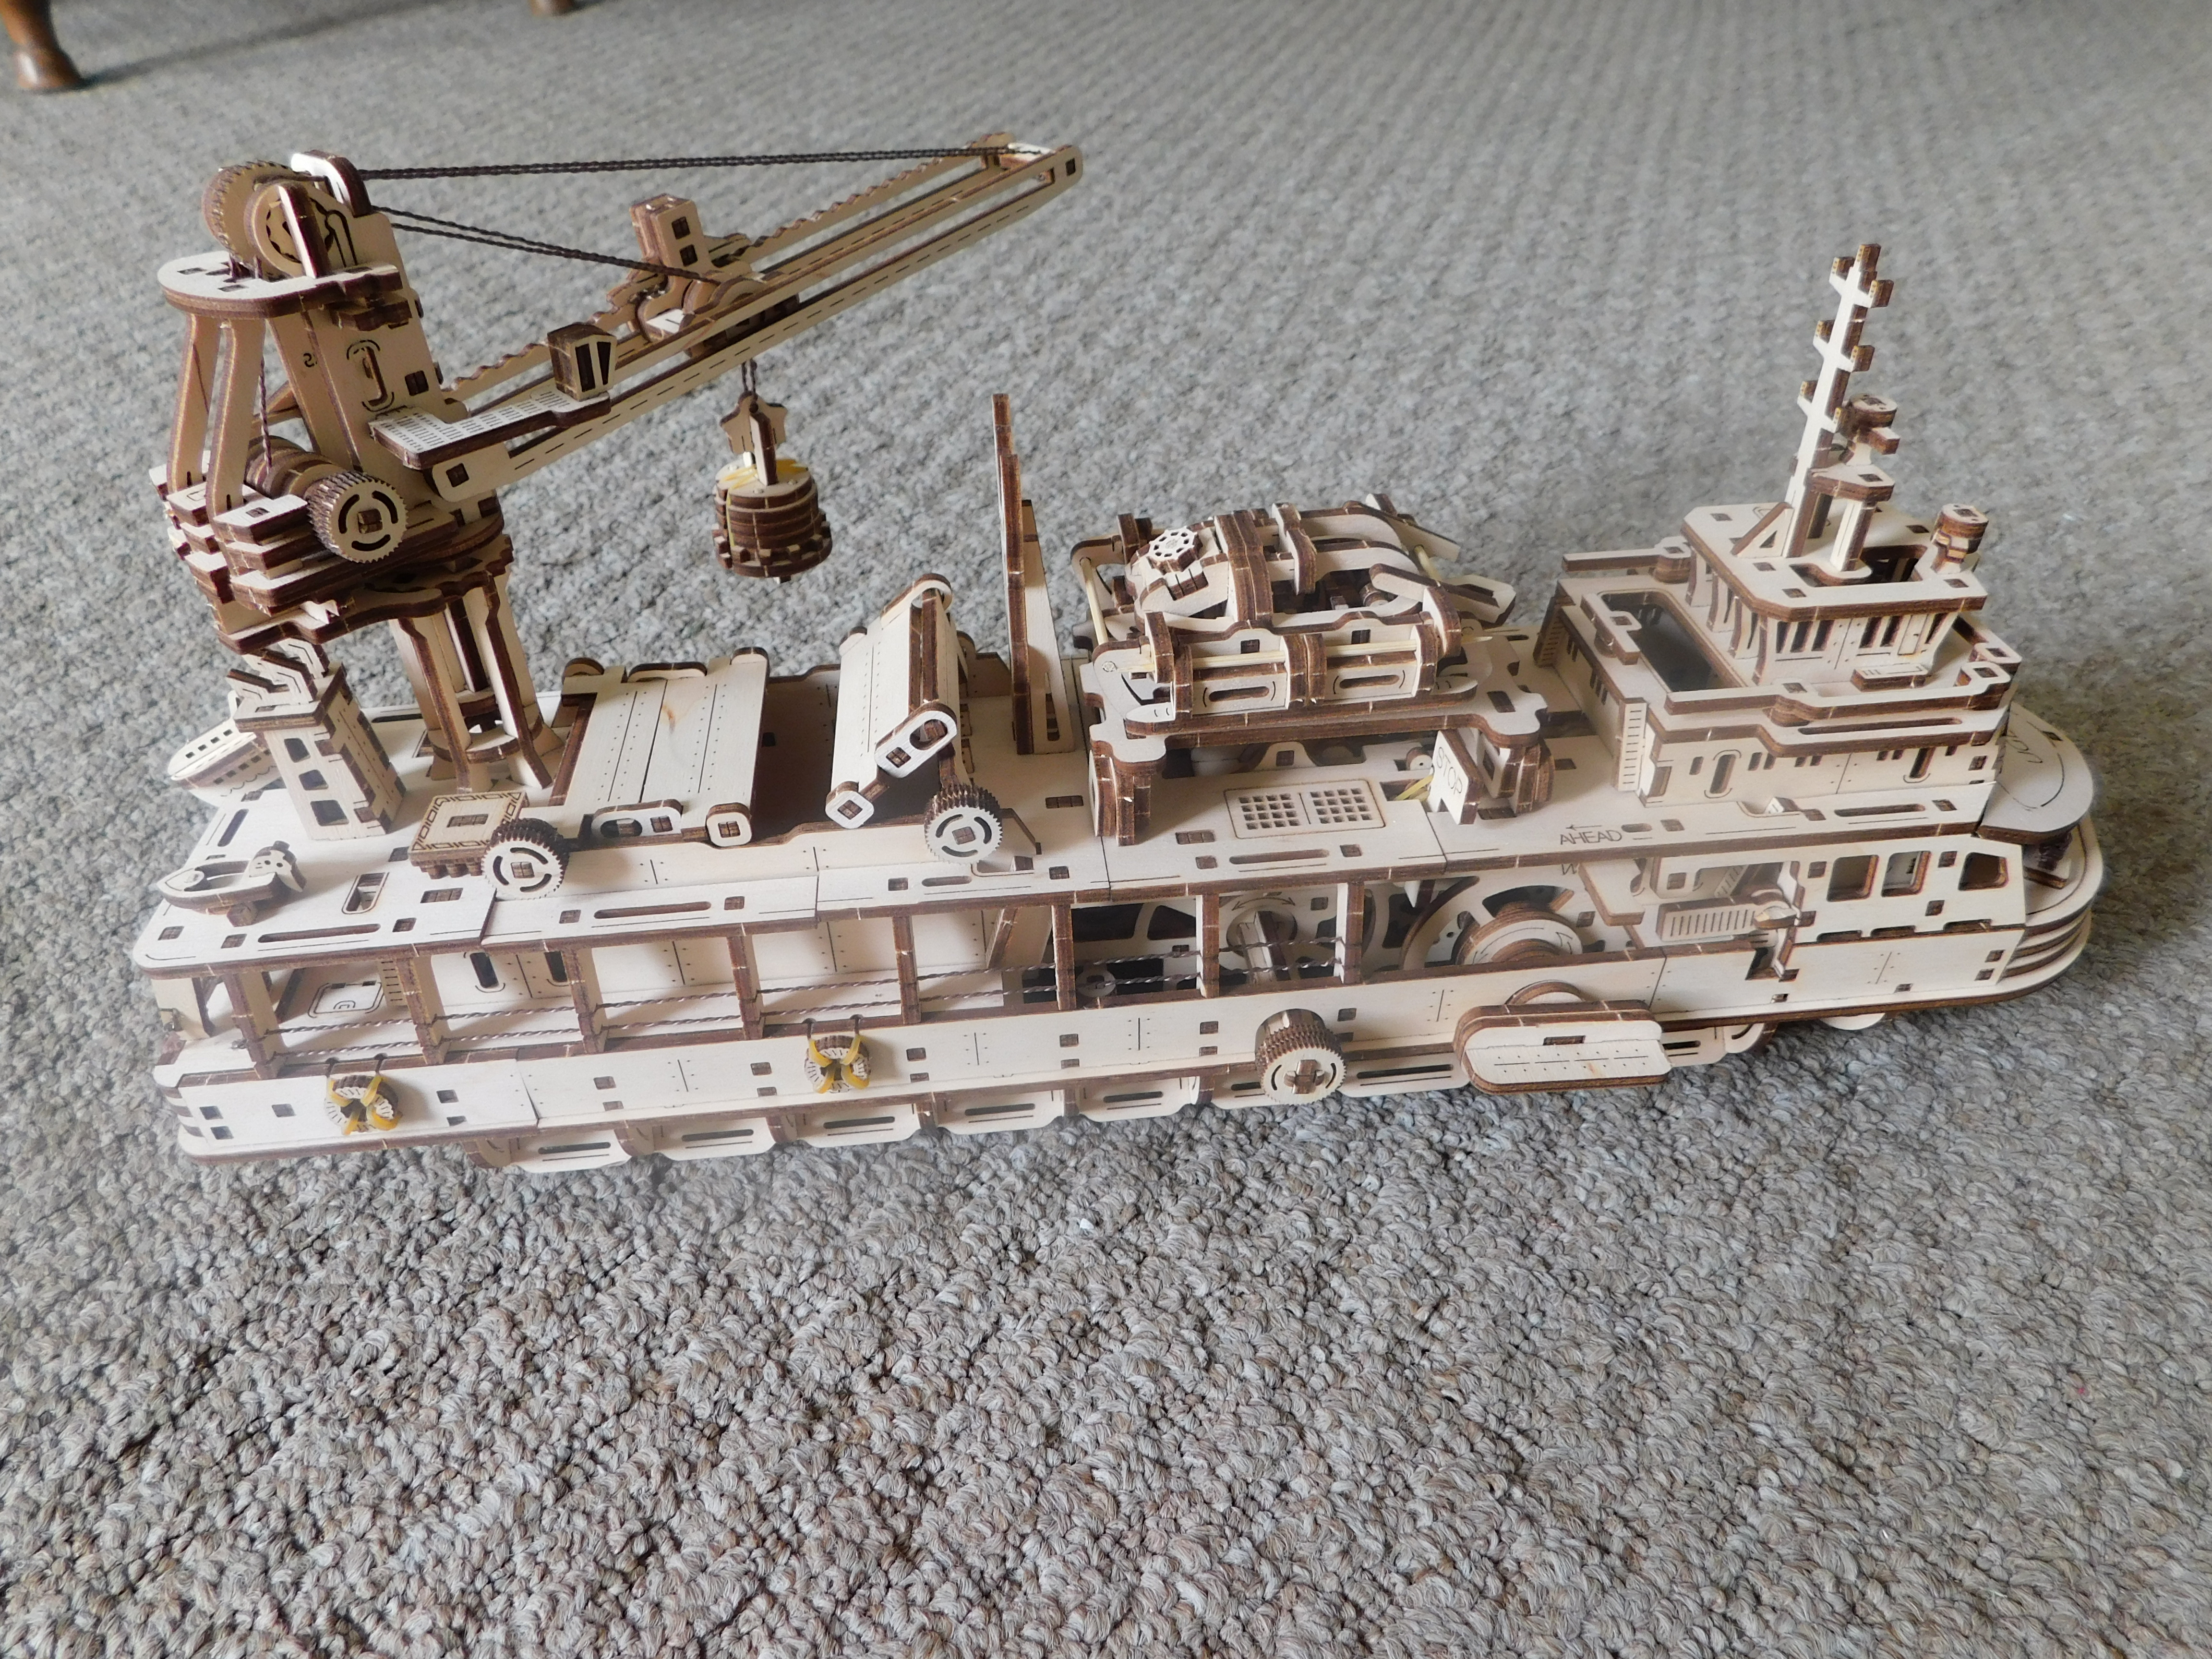 Scientific Research Ship Other Side